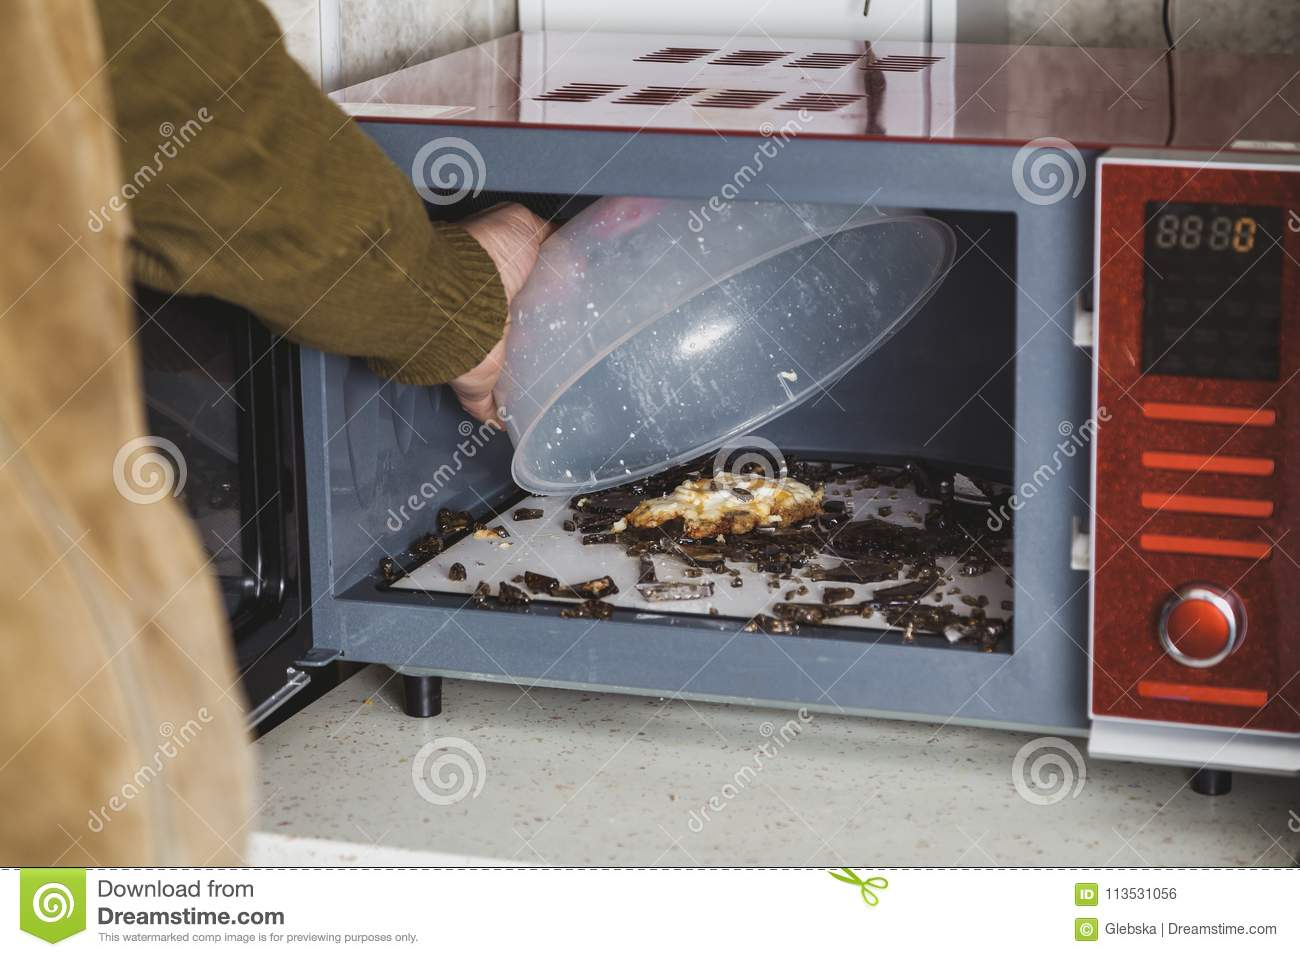 https www dreamstime com glass plate exploded microwave oven plate broke microwave oven heating glassware shattered small pieces image113531056